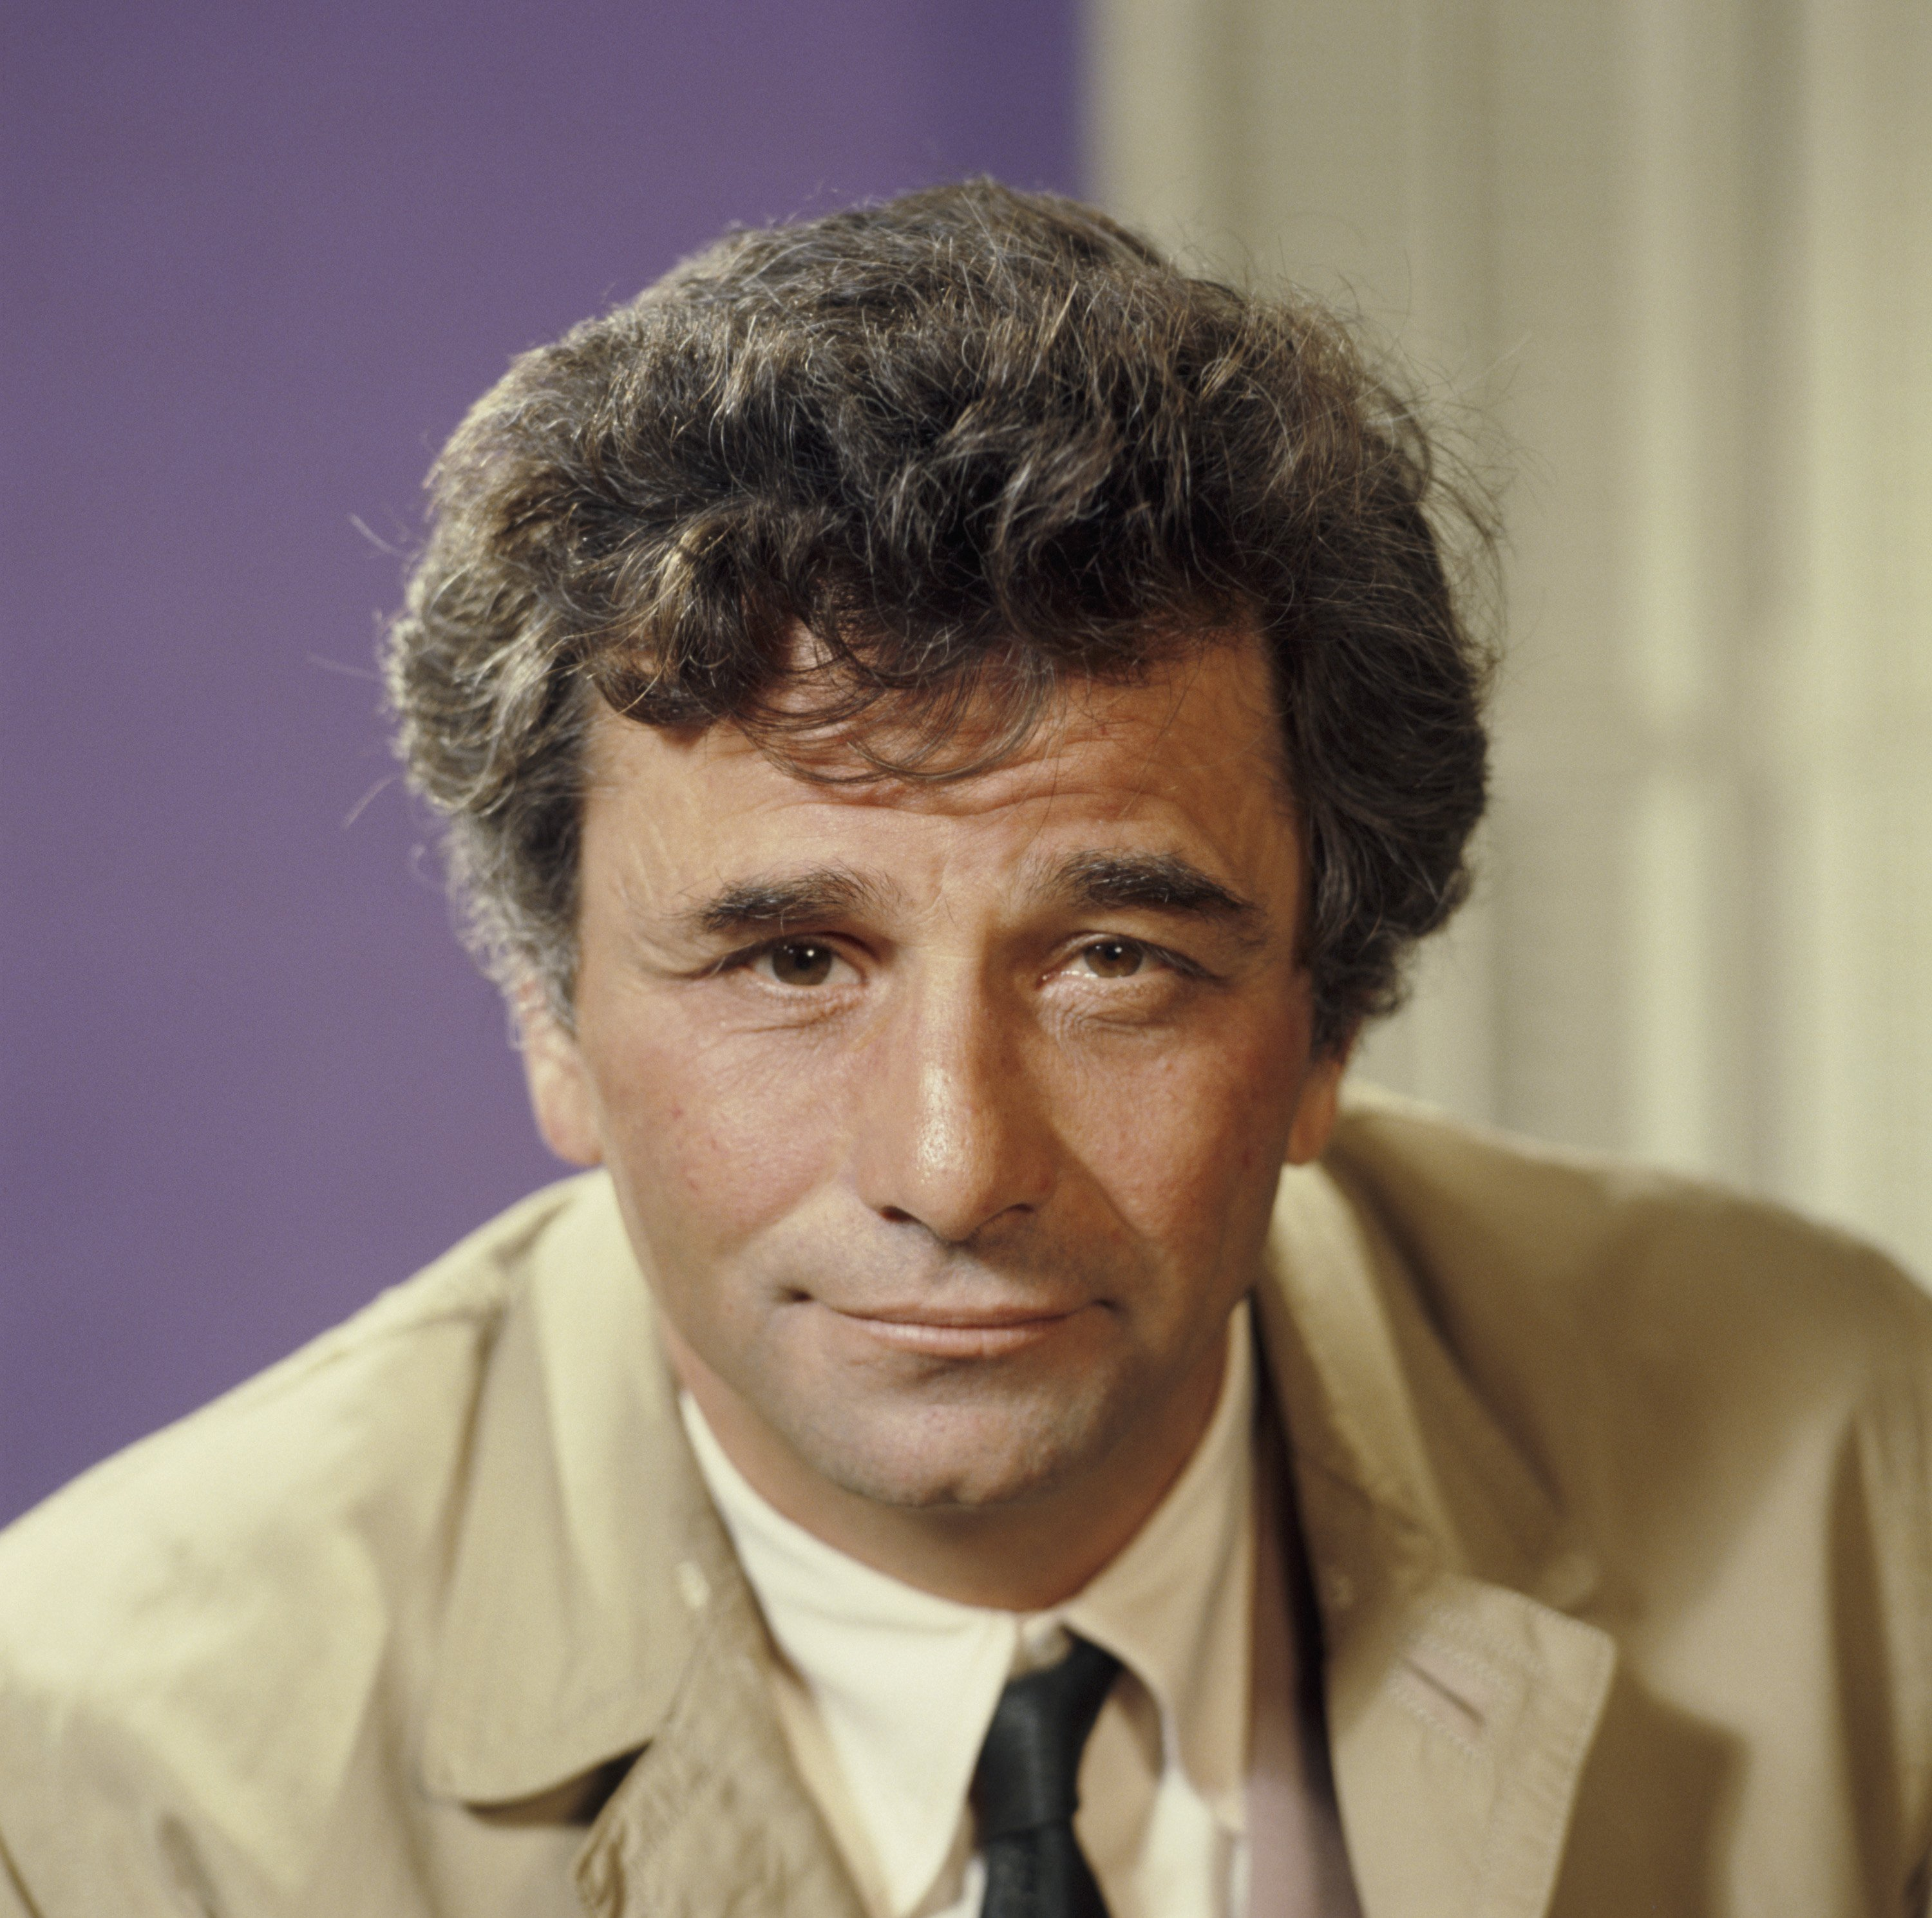 Veteran actor Peter Falk during his 1968 role as Lieutenant Columbo. | Photo: Getty Images